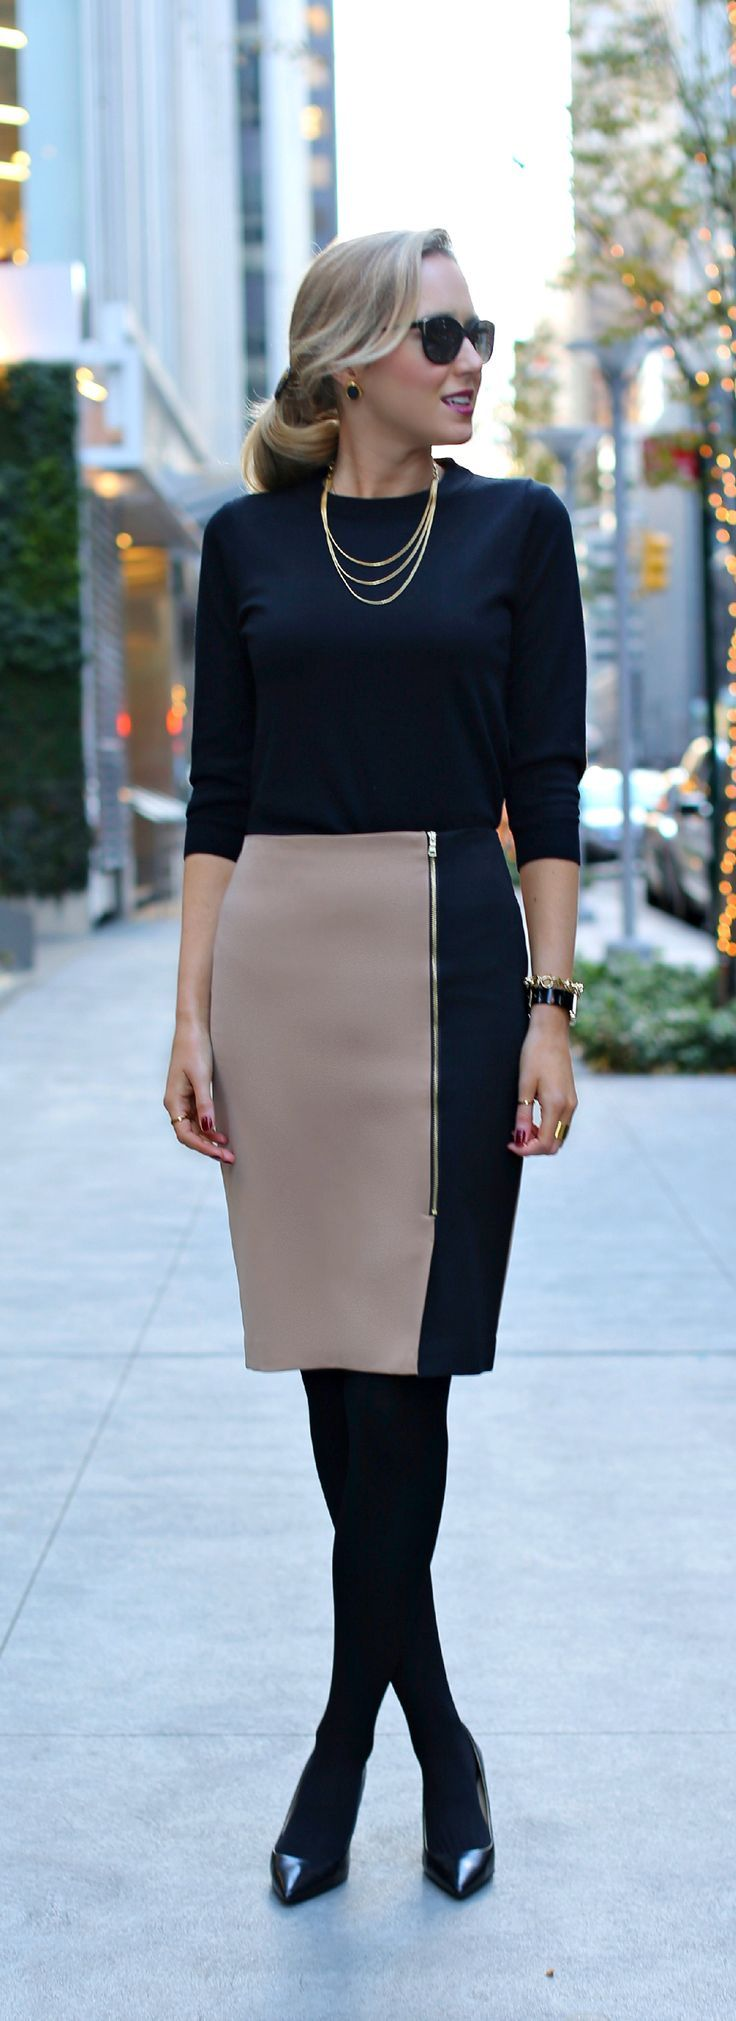 33 best women's business casual attire images on pinterest